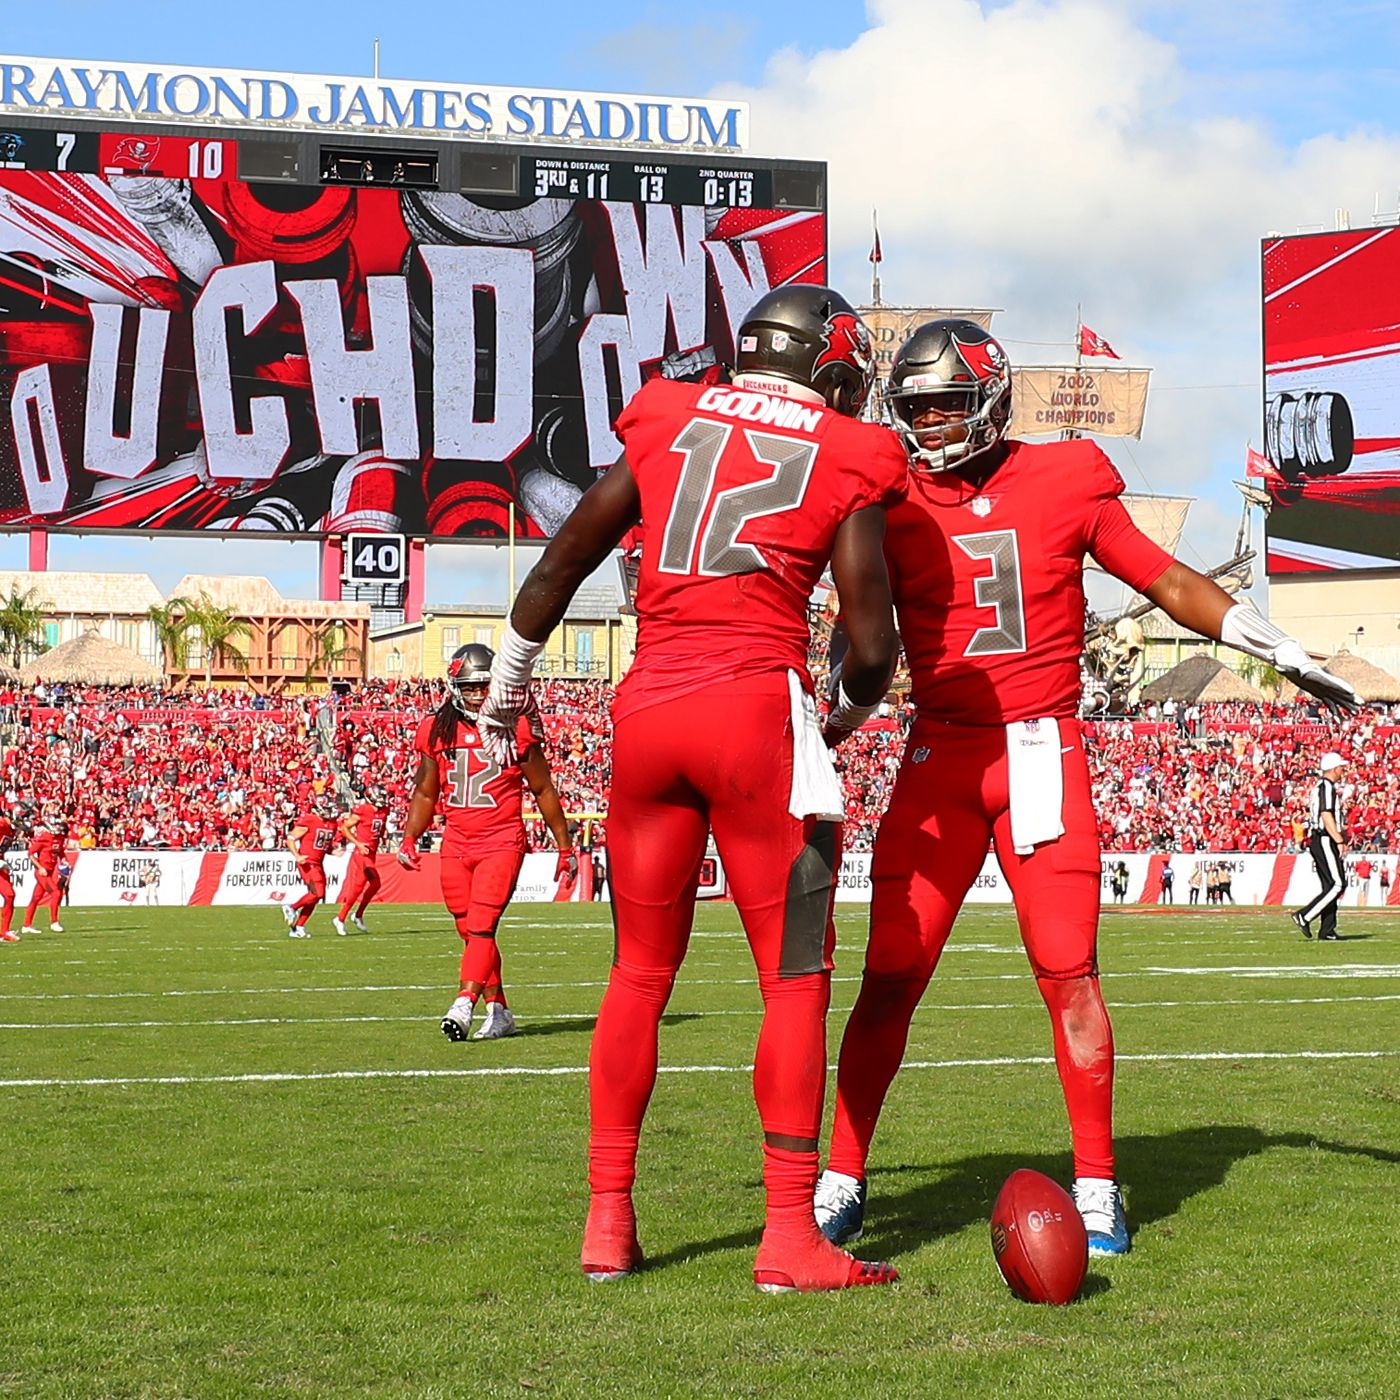 Bucs Have Nfl S Top Trio In Jameis Winston Mike Evans And Chris Godwin Bucs Nation